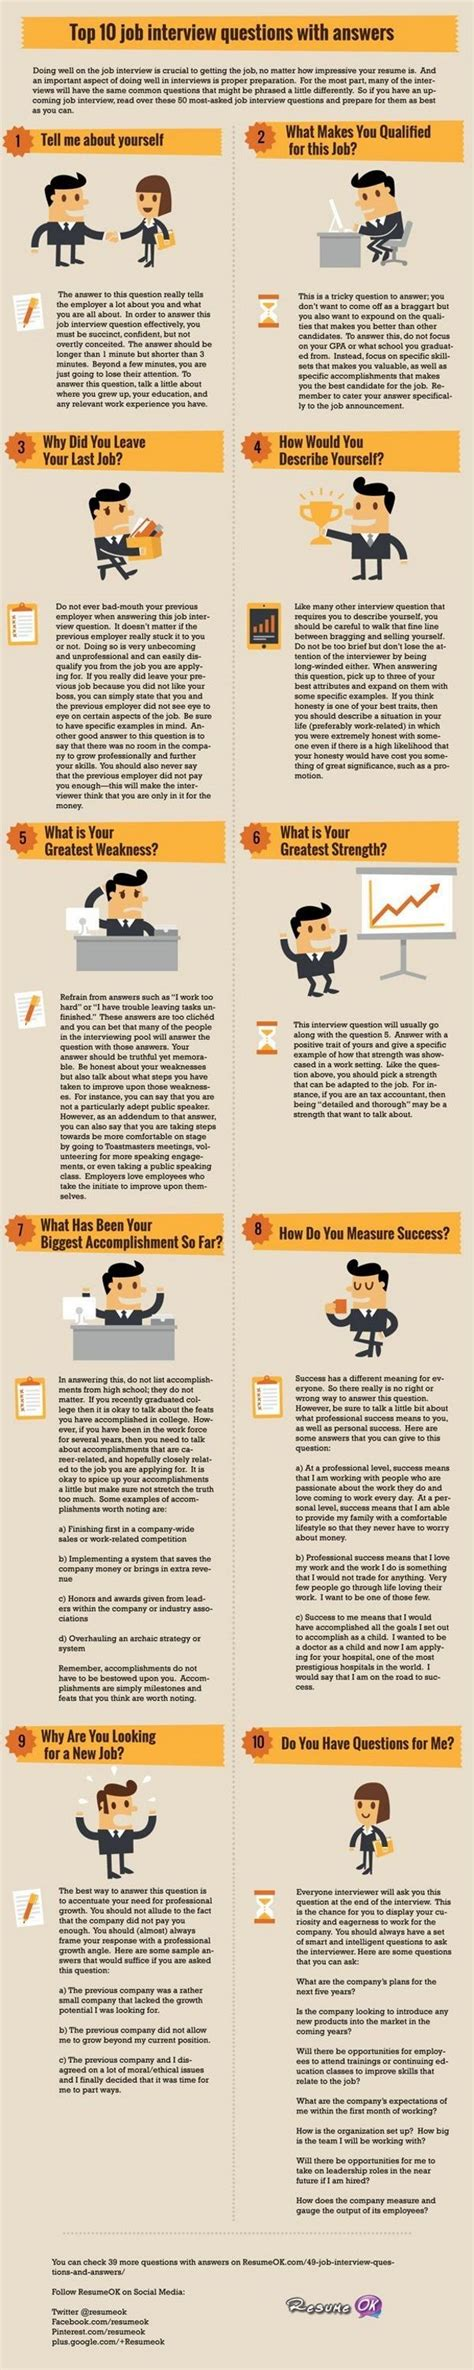 how to answer 10 most common interview questions autos post the 10 most common job interview questions and how to